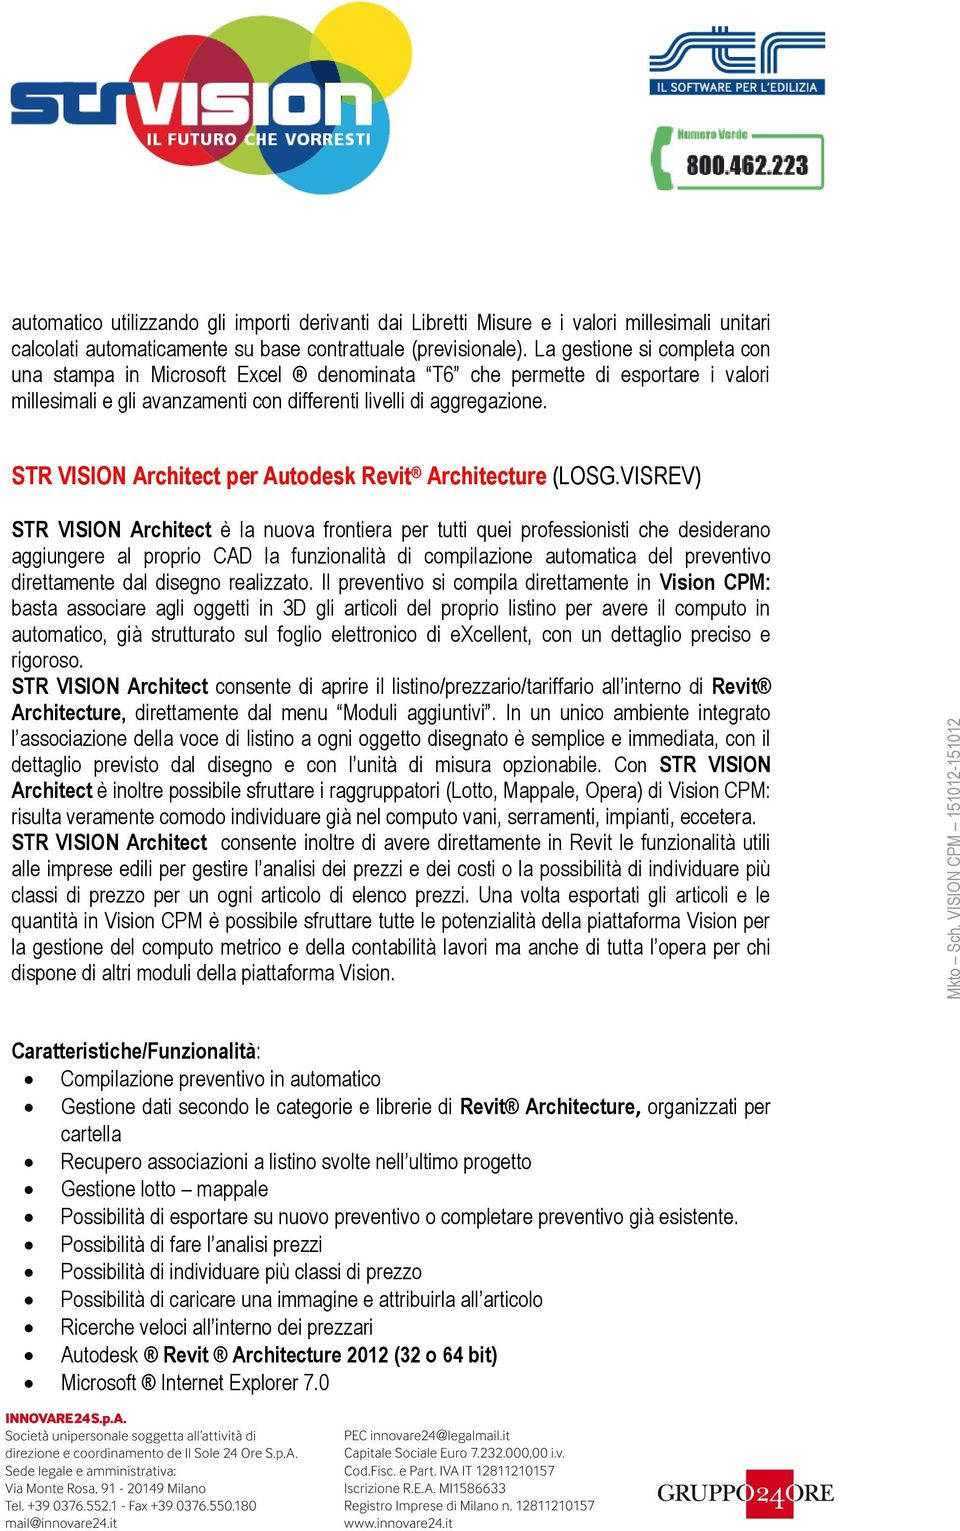 STR VISION Architect per Autodesk Revit Architecture (LOSG.